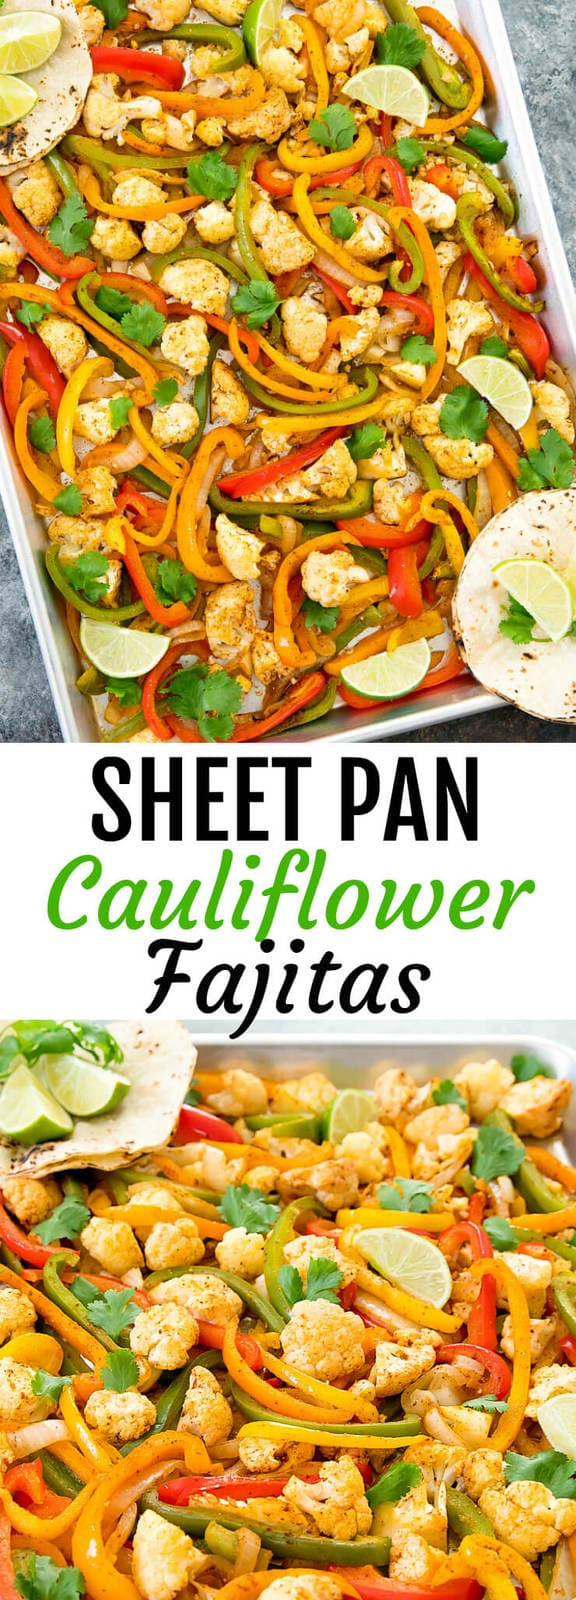 Sheet Pan Cauliflower Fajitas. A healthier and easier version of fajitas. Everything cooks on one sheet pan for easy clean-up!